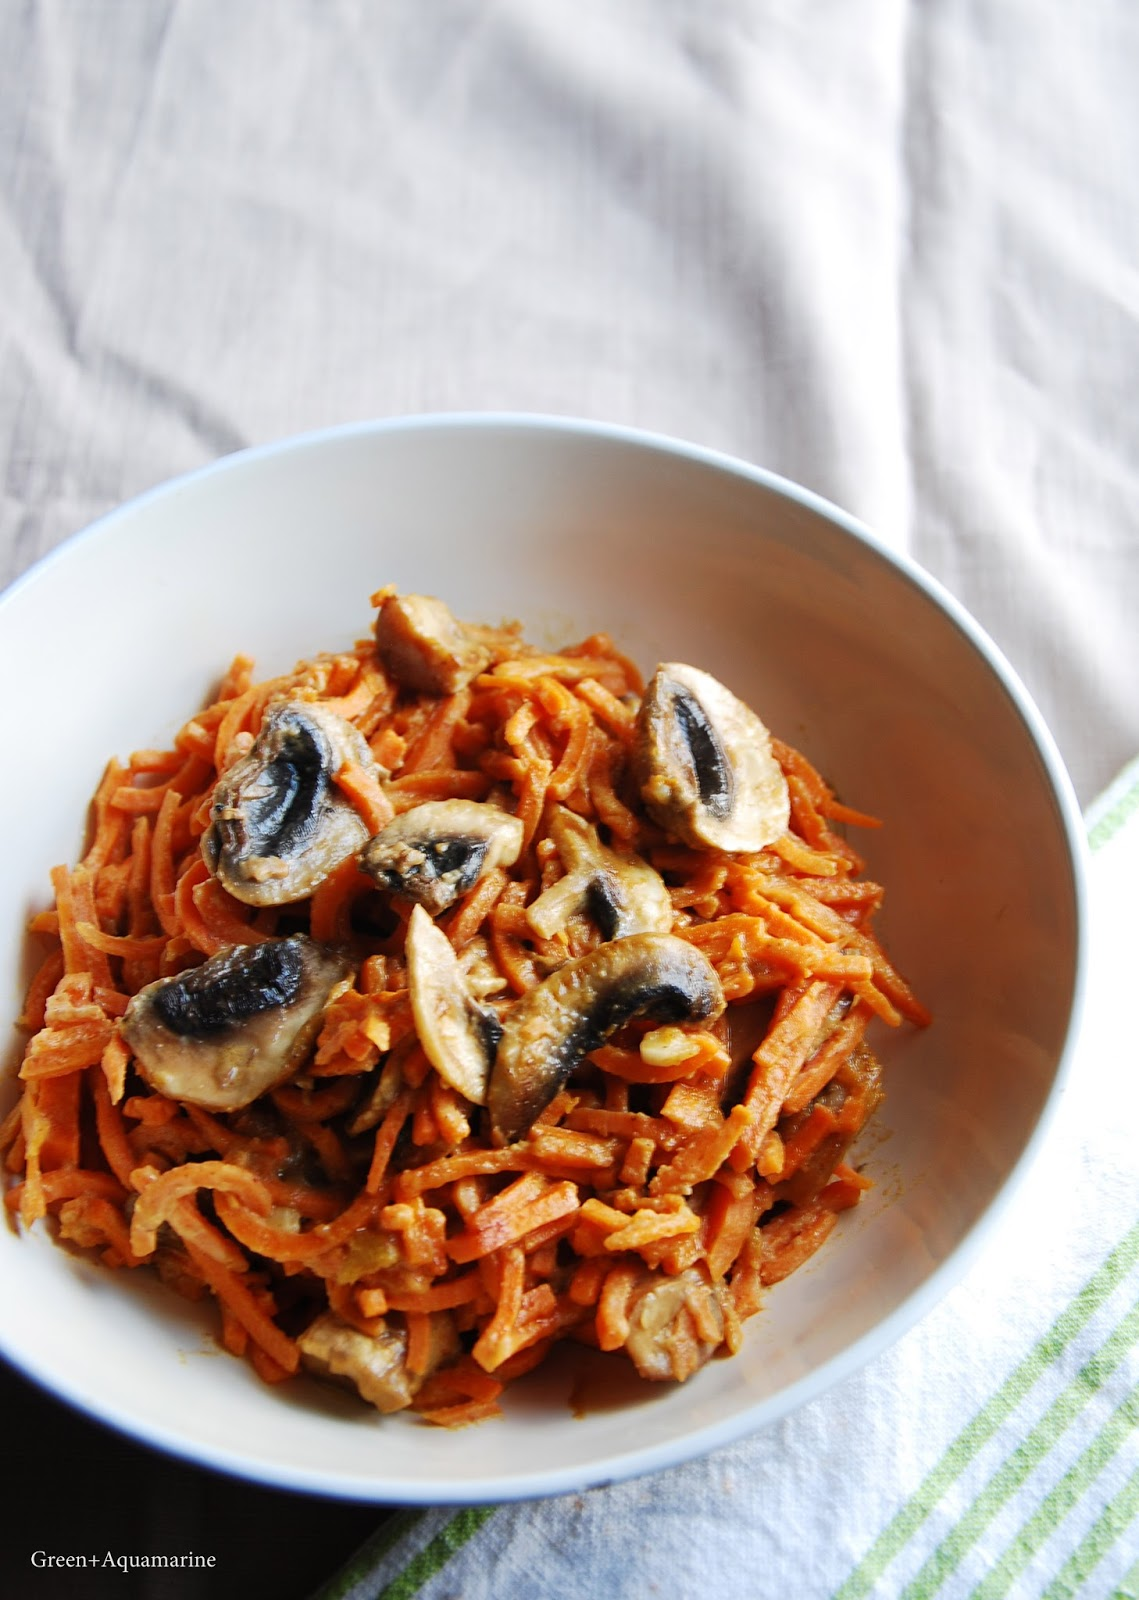 Vegan sweet potato satay noodles. Via @eleanormayc